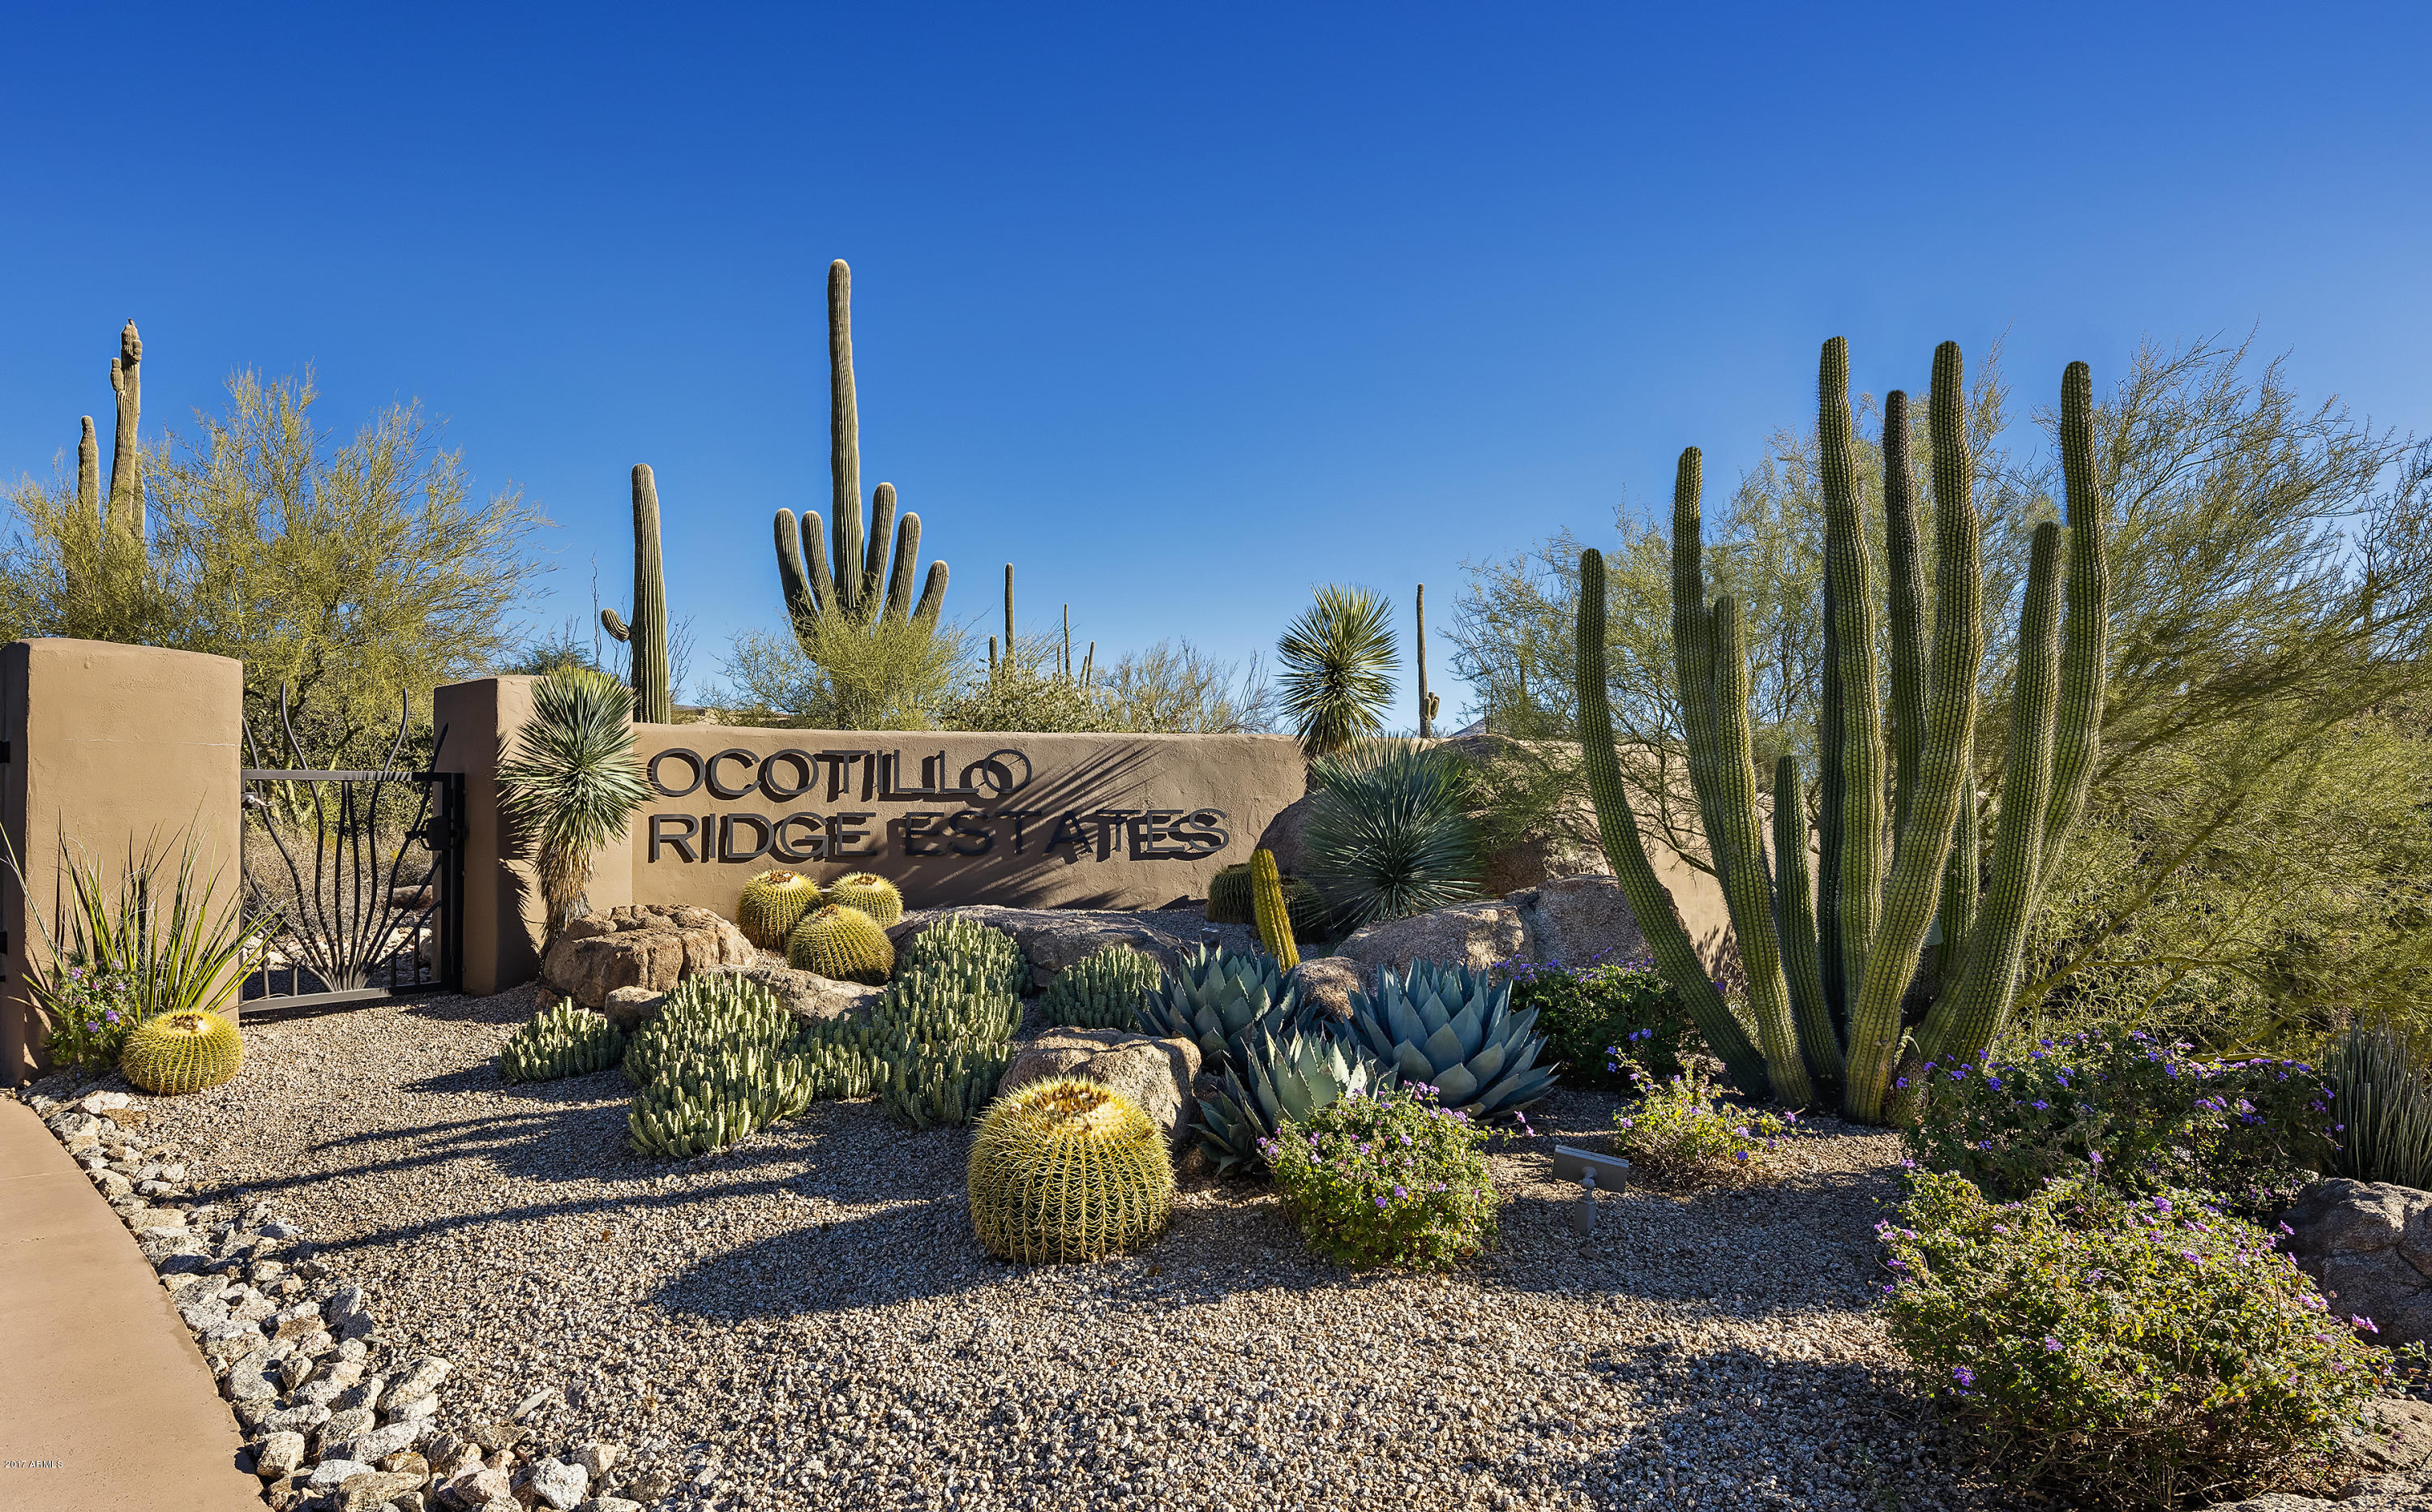 MLS 5854171 39601 N OCOTILLO RIDGE Drive, Carefree, AZ 85377 Carefree AZ Luxury